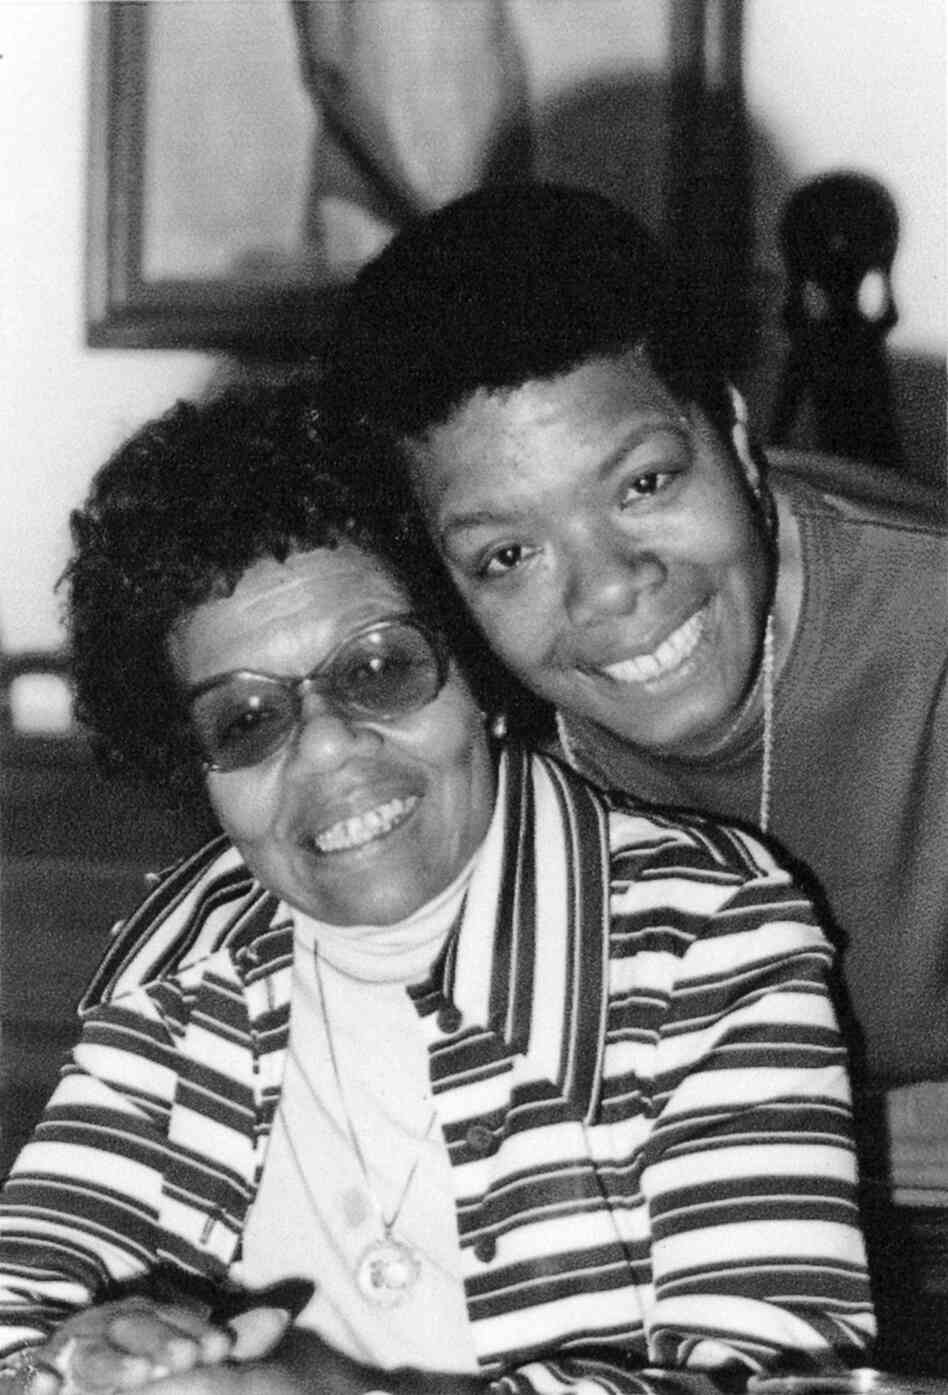 Maya Angelou and her mother, Vivian Baxter. Although it took years, Angelou and her mother eventually developed a close and loving relationship.